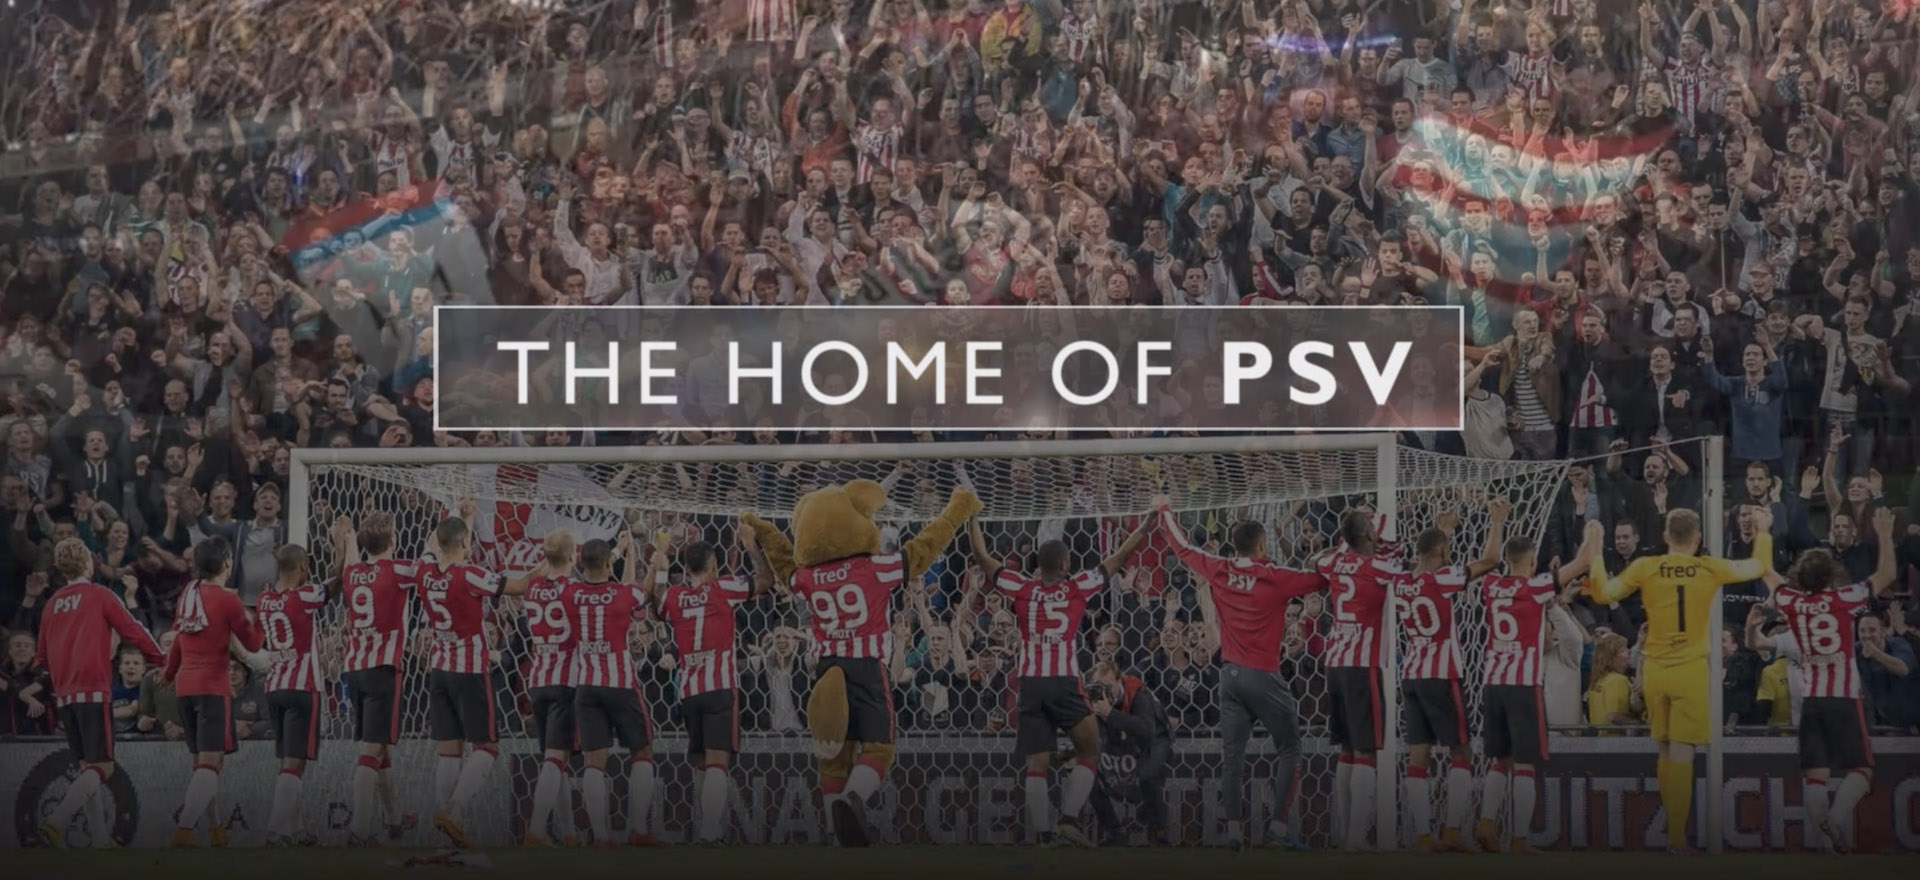 The home of PSV